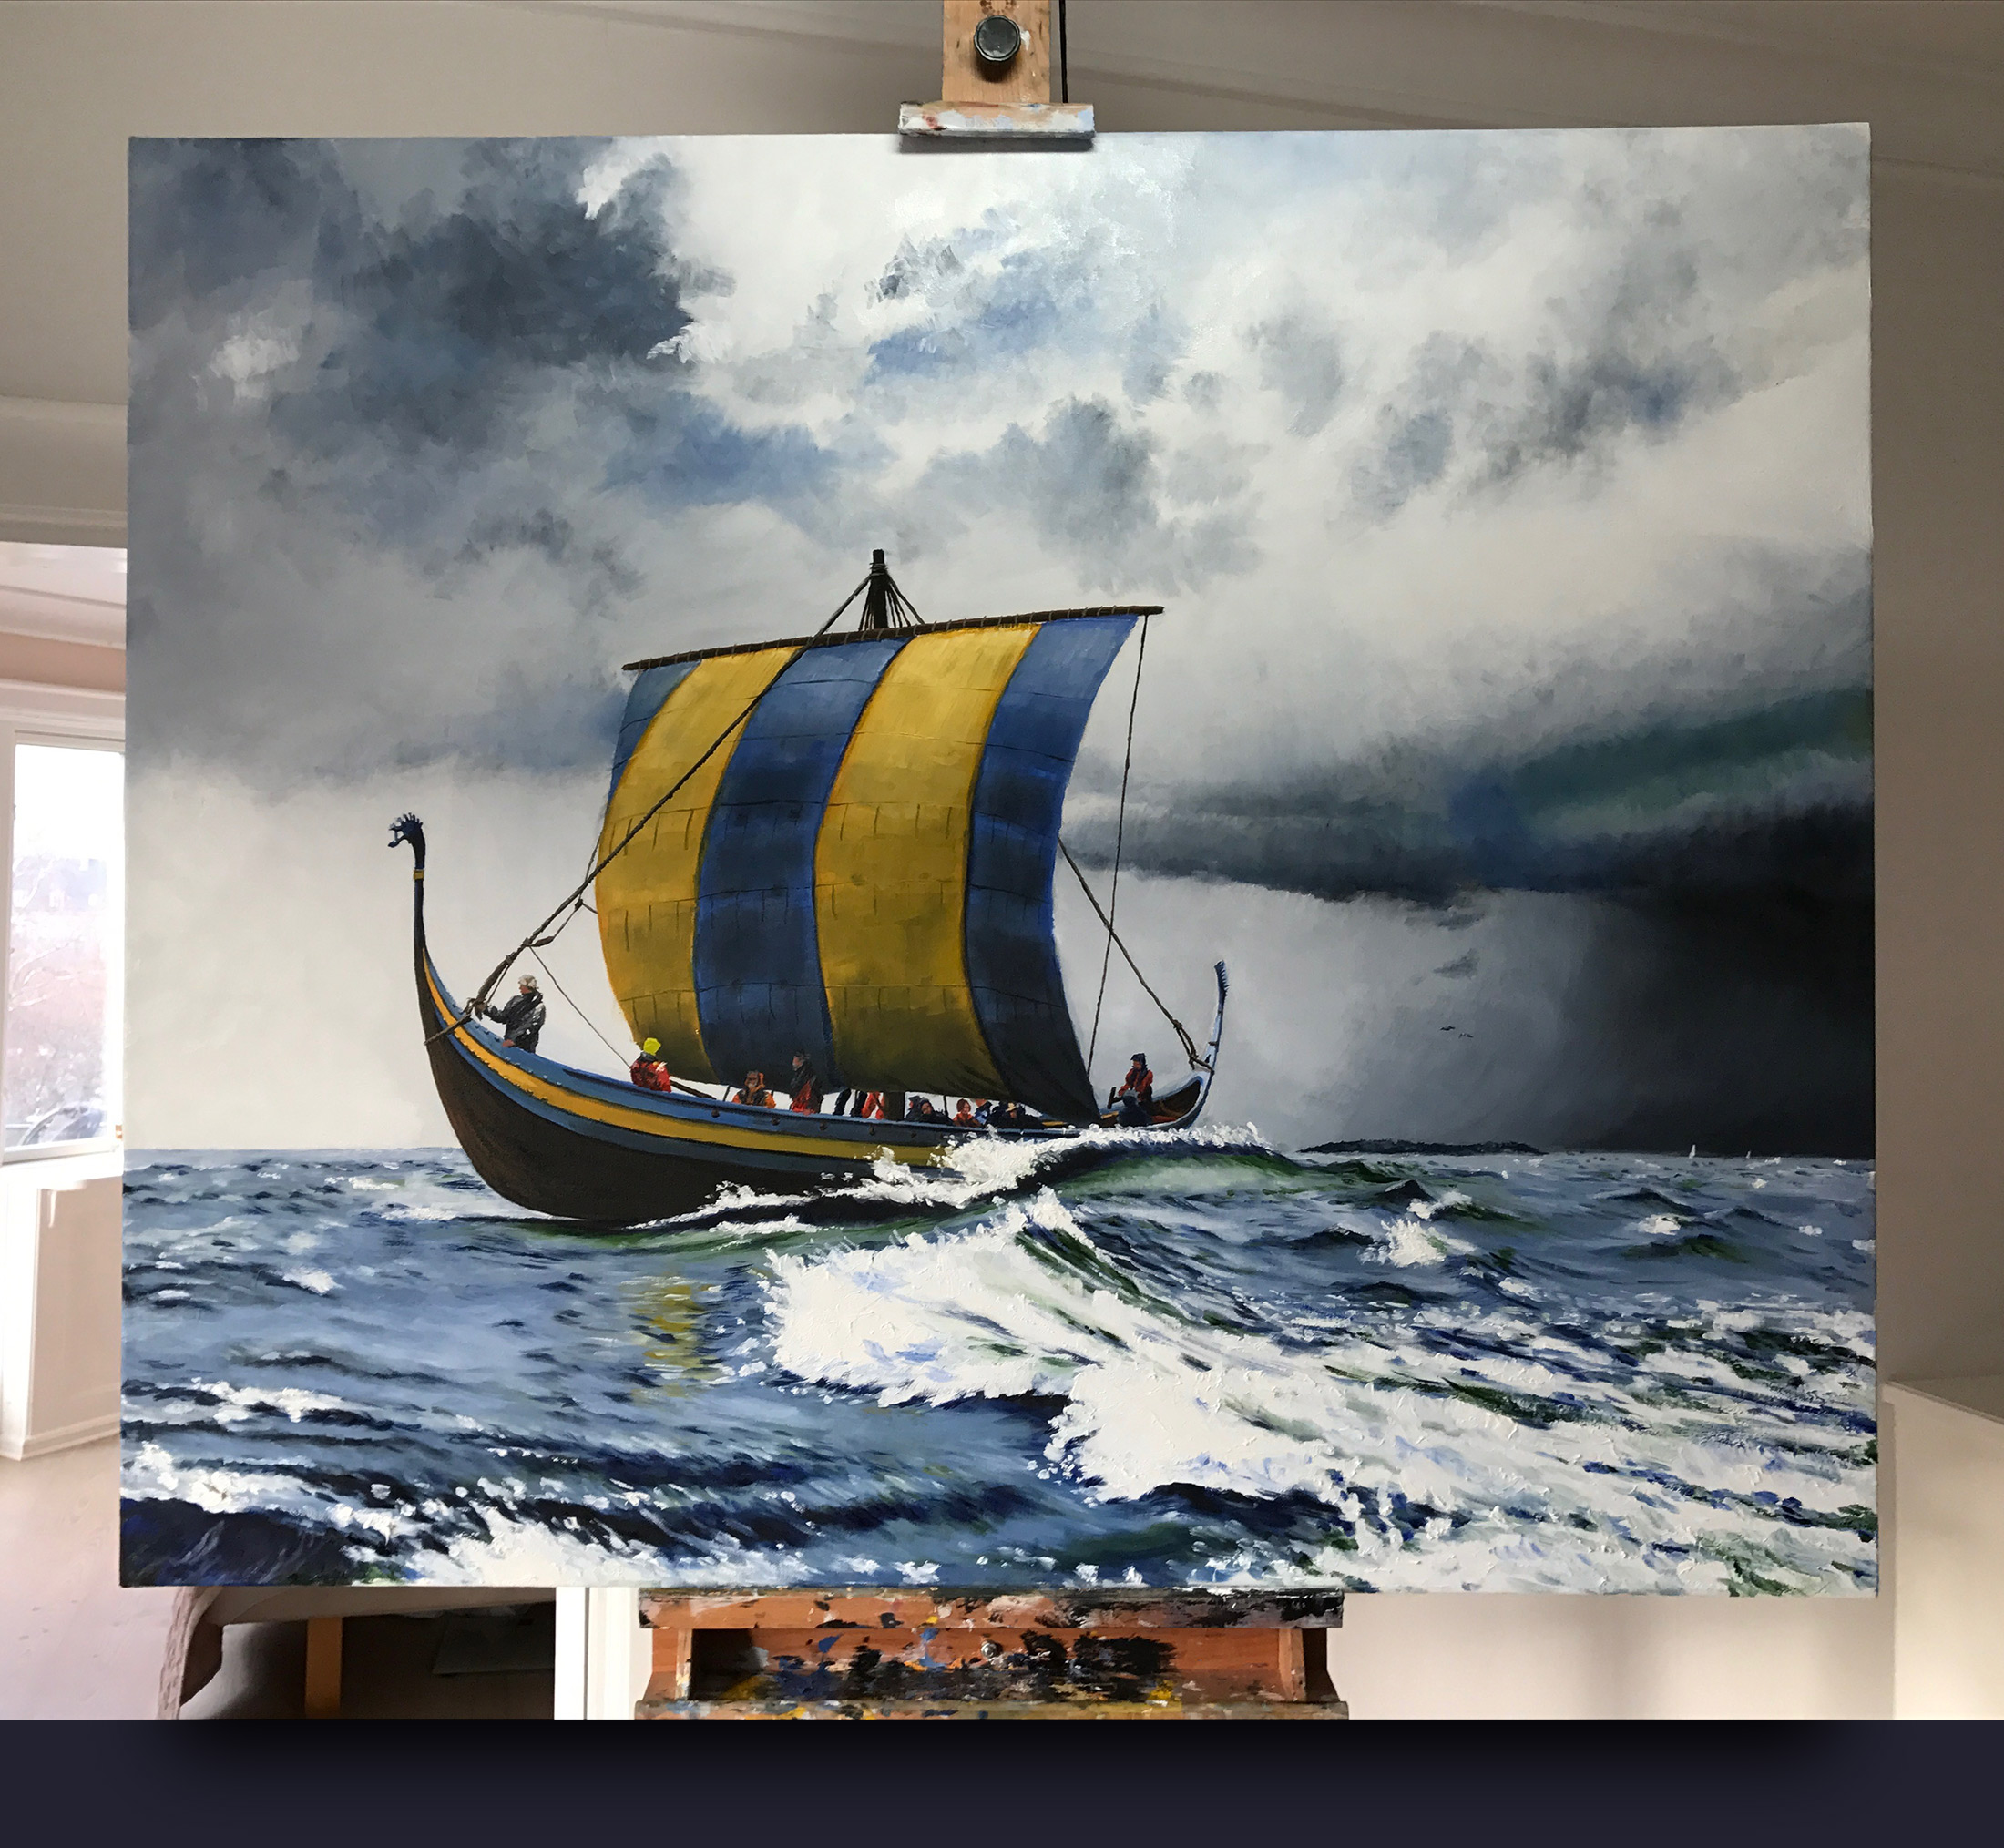 Ladbydragen viking ship by Jonas Linell